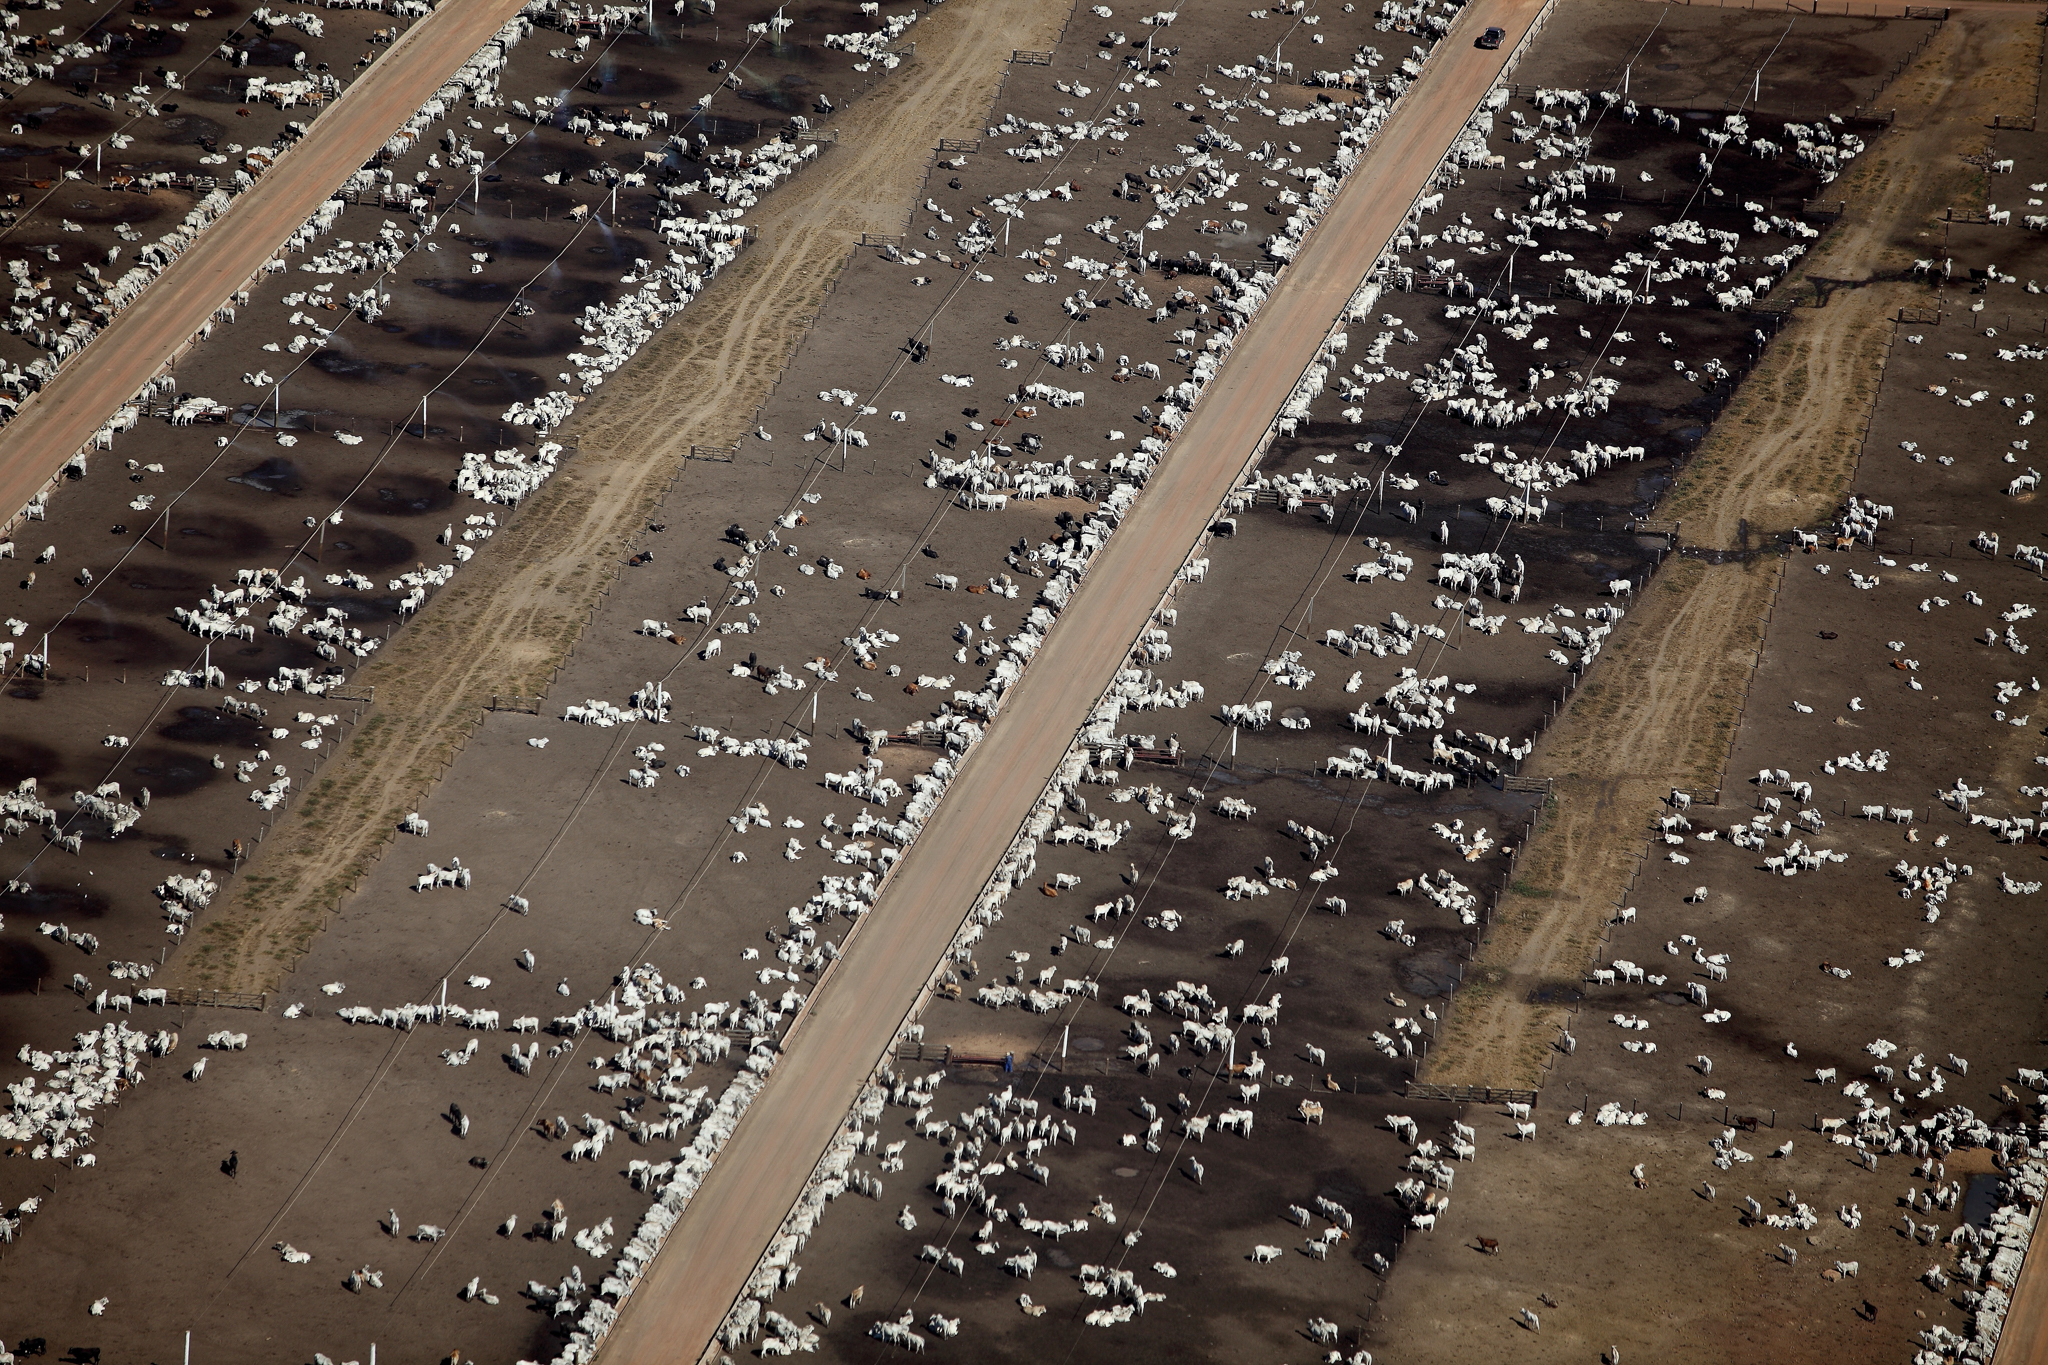 Livestock wait to go to theslaughterhouses in northern Mato Grosso. Photograph by Rodrigo Baleia